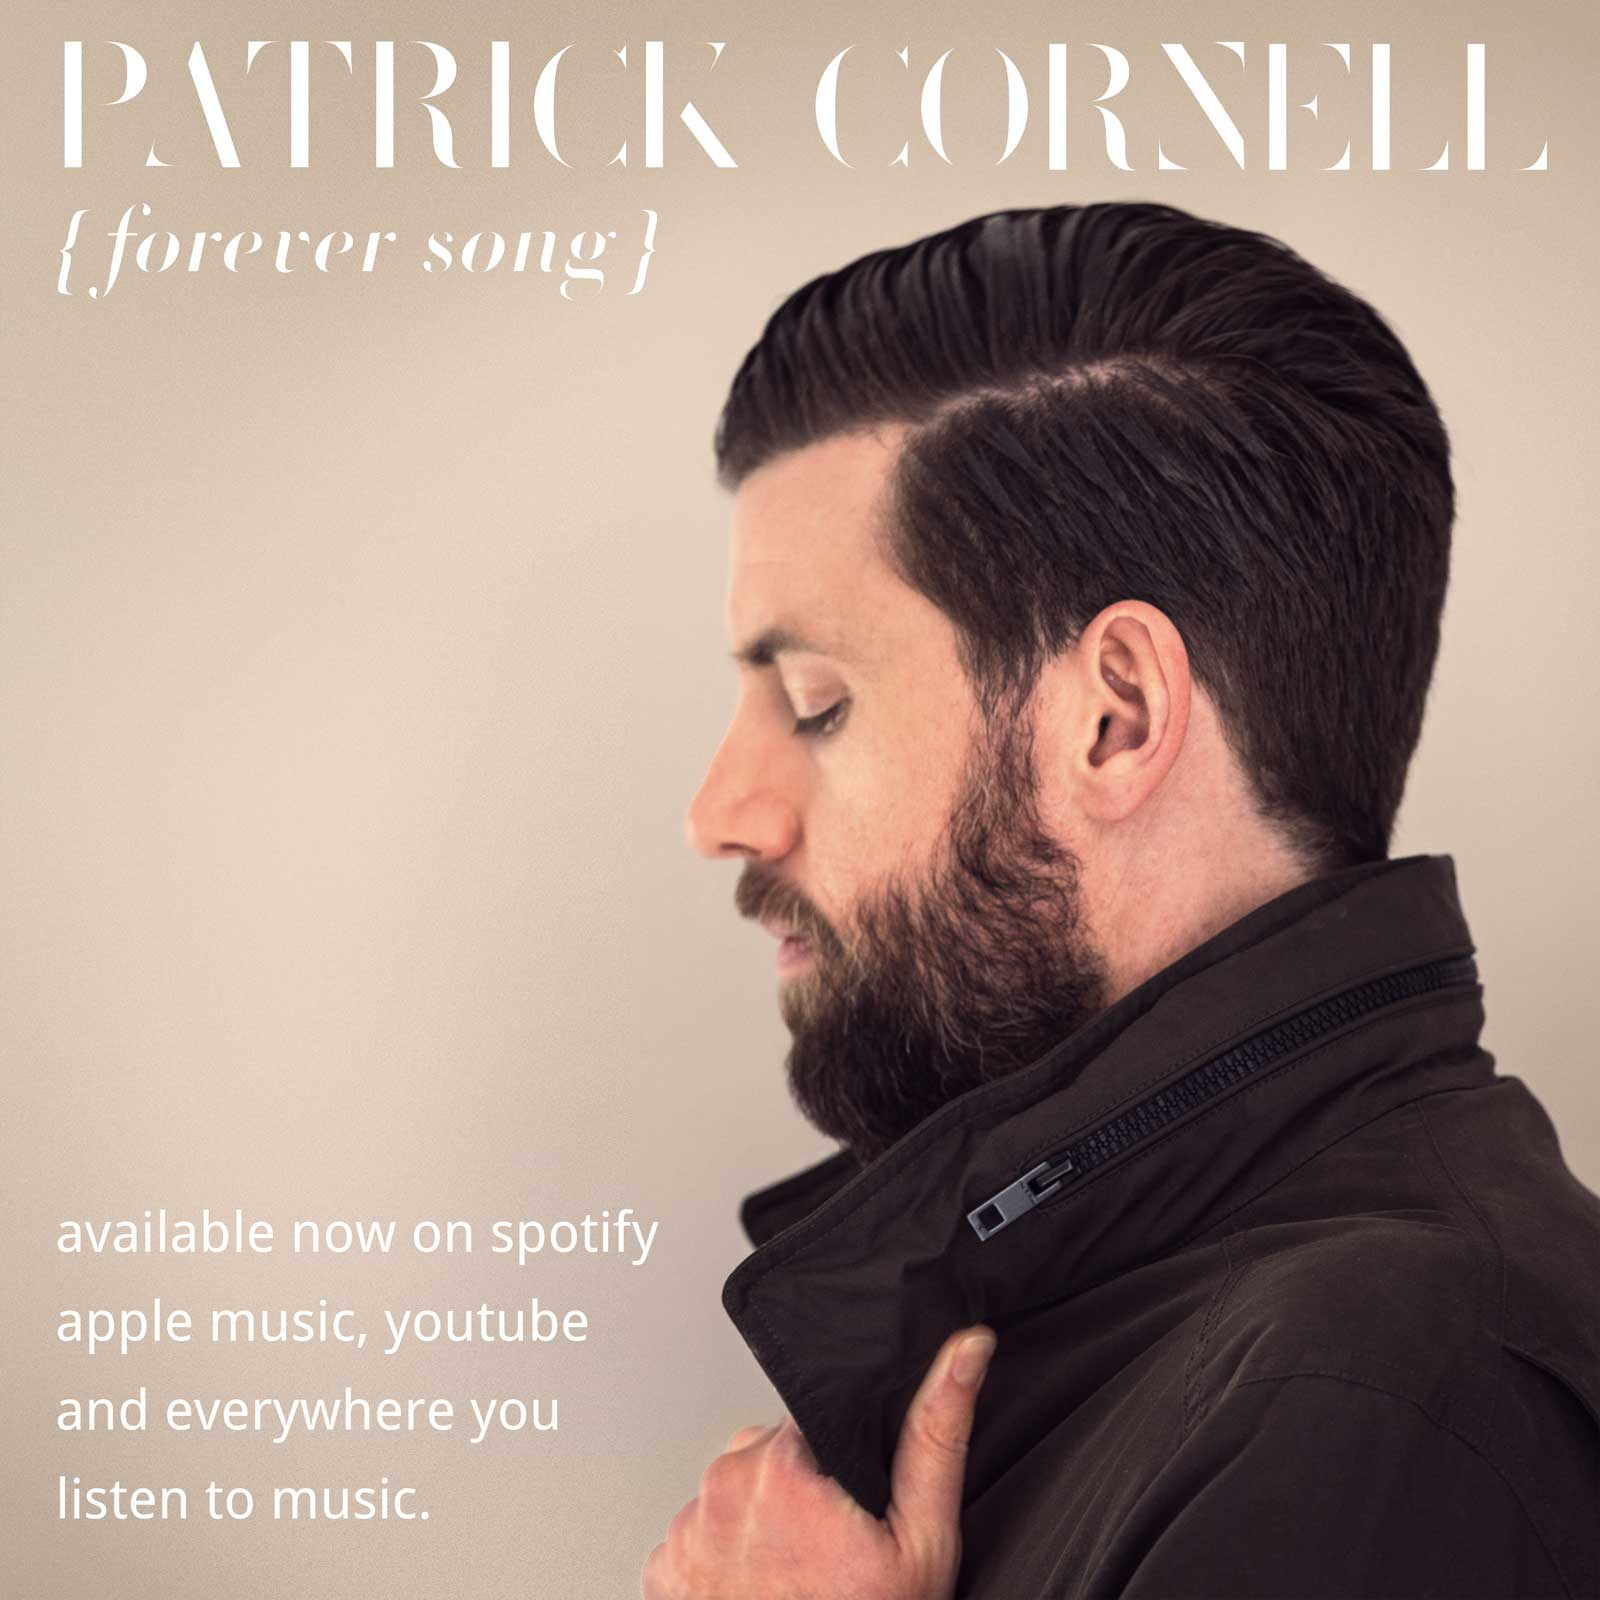 Patrick Cornell 'Forever Song' cover